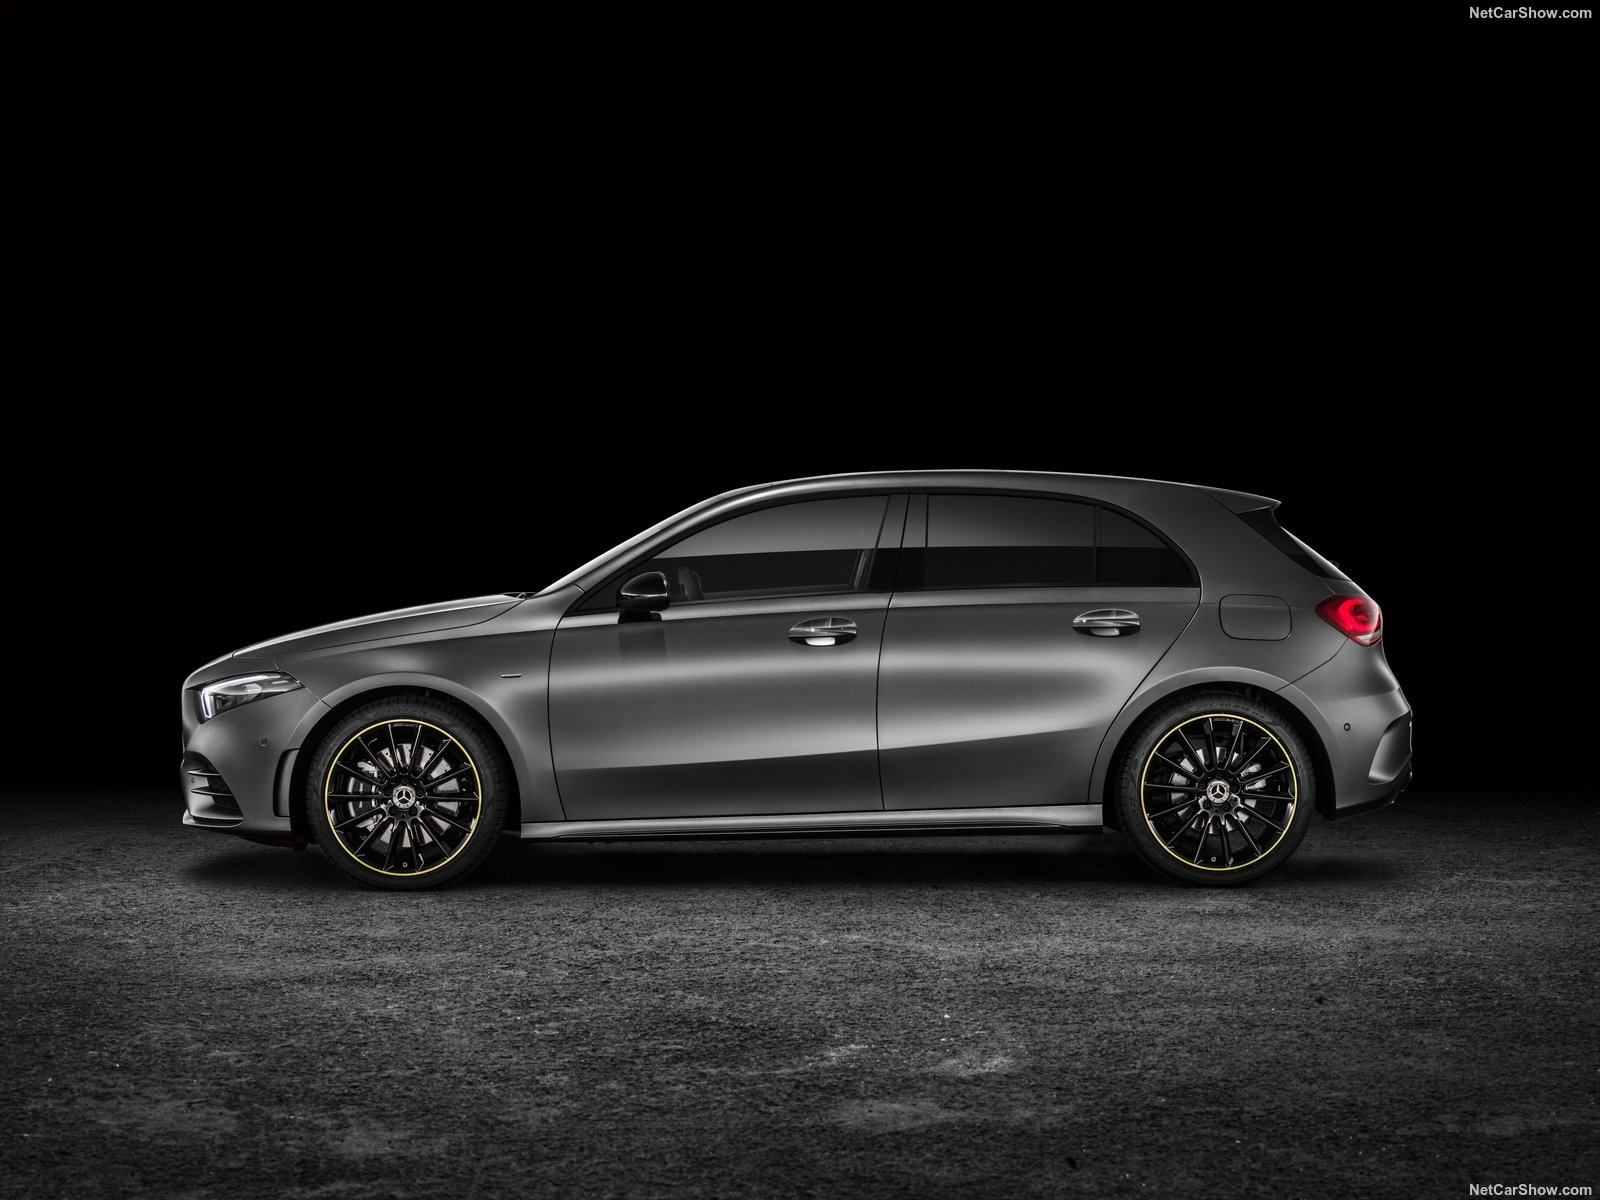 Mercedes-Benz A-Class photo 186125